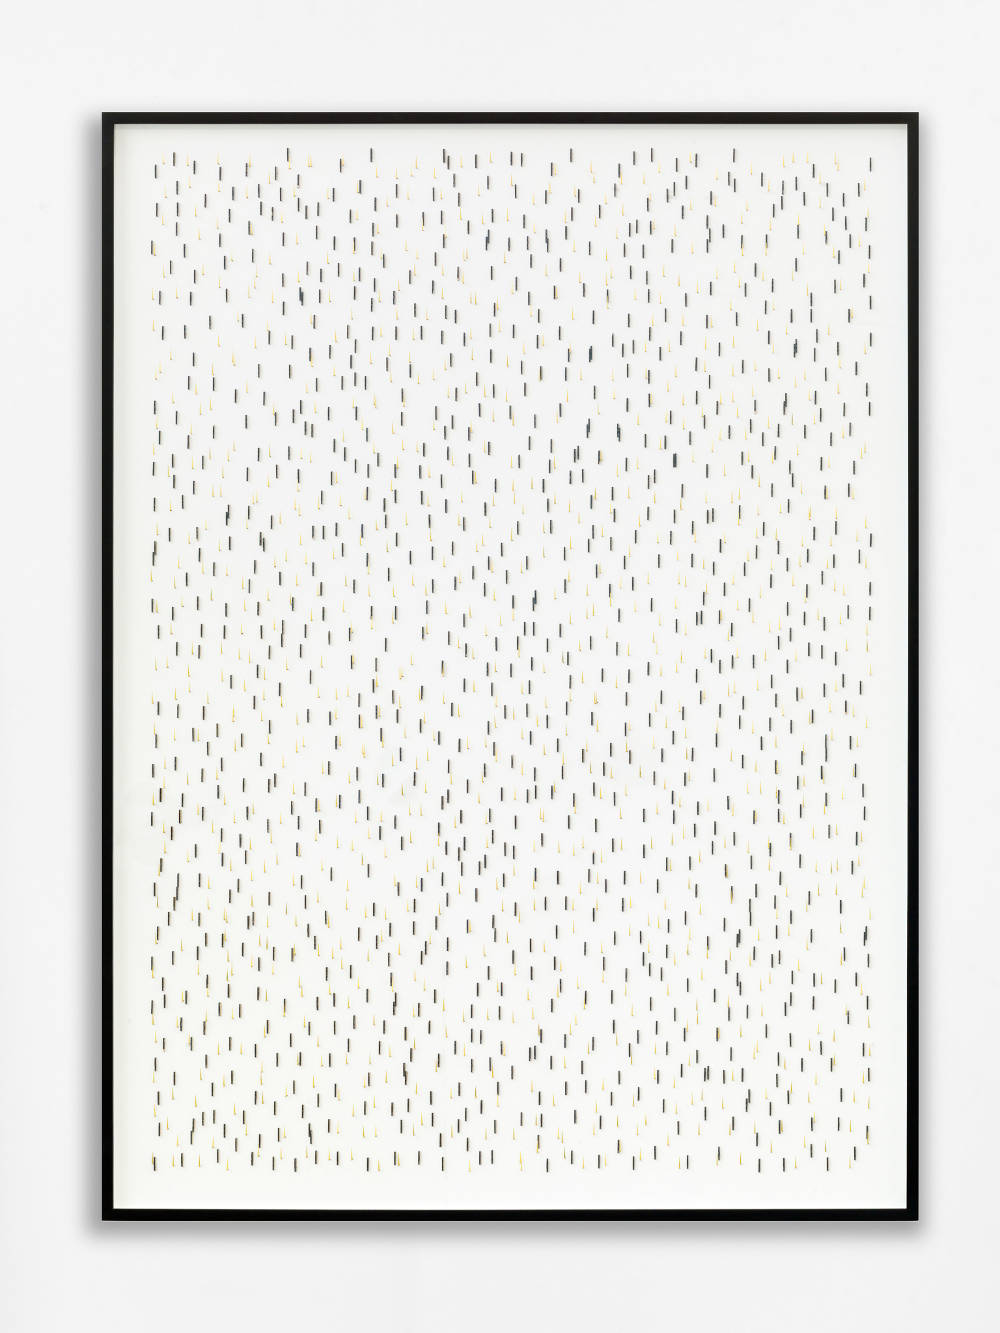 Alicja Kwade, Rain (17 minutes/ 100 cm), 2019. Clock hands and folding ruler on paper 52 1/4 x 38 7/8 x 1 7/8 inches (132.7 x 98.7 x 4.8 cm) framed. Unique